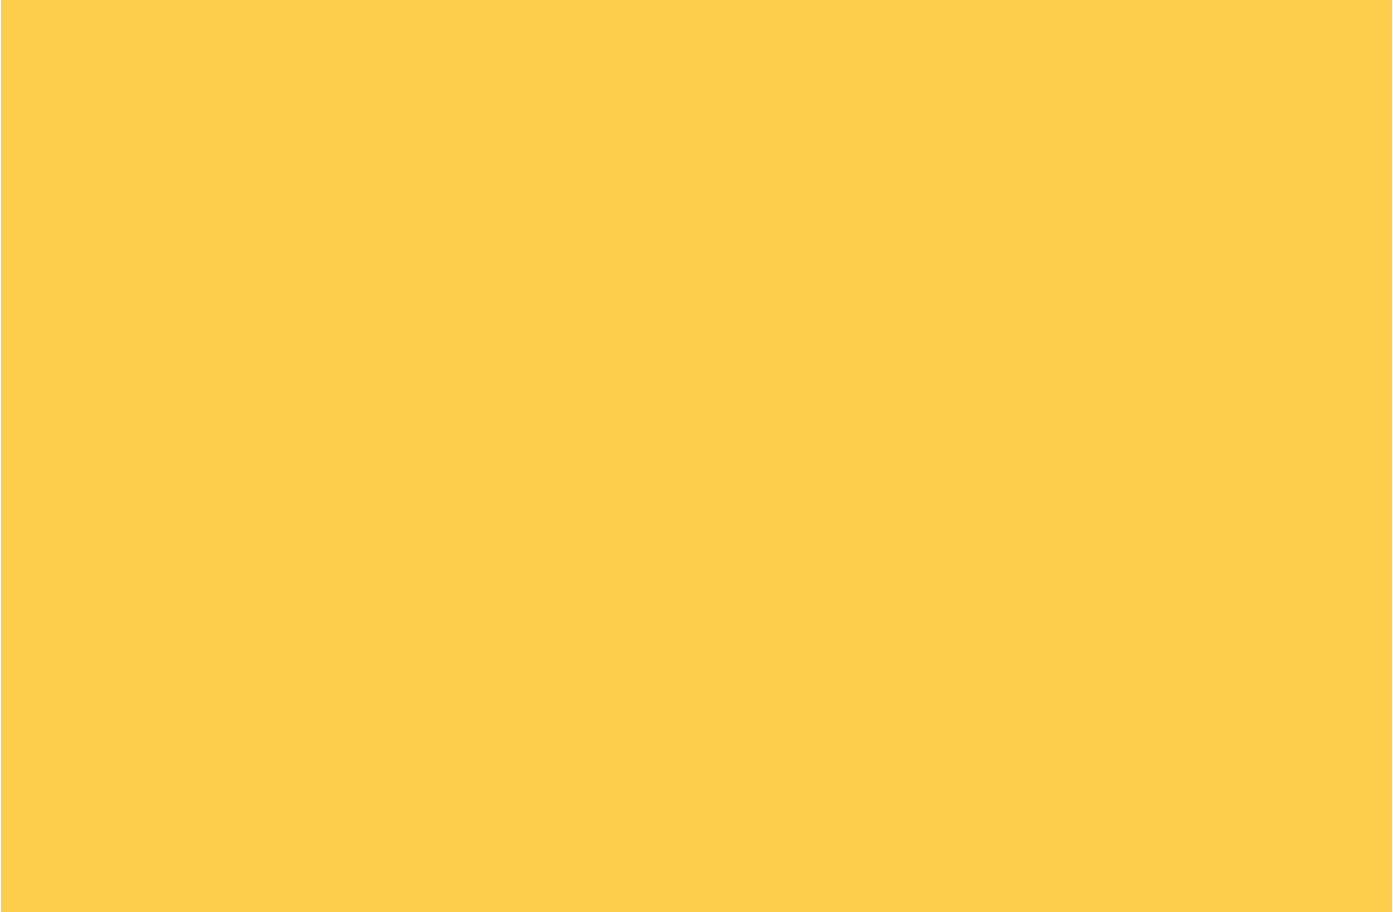 style rectangle-yellow images in PNG and SVG | Icons8 Illustrations